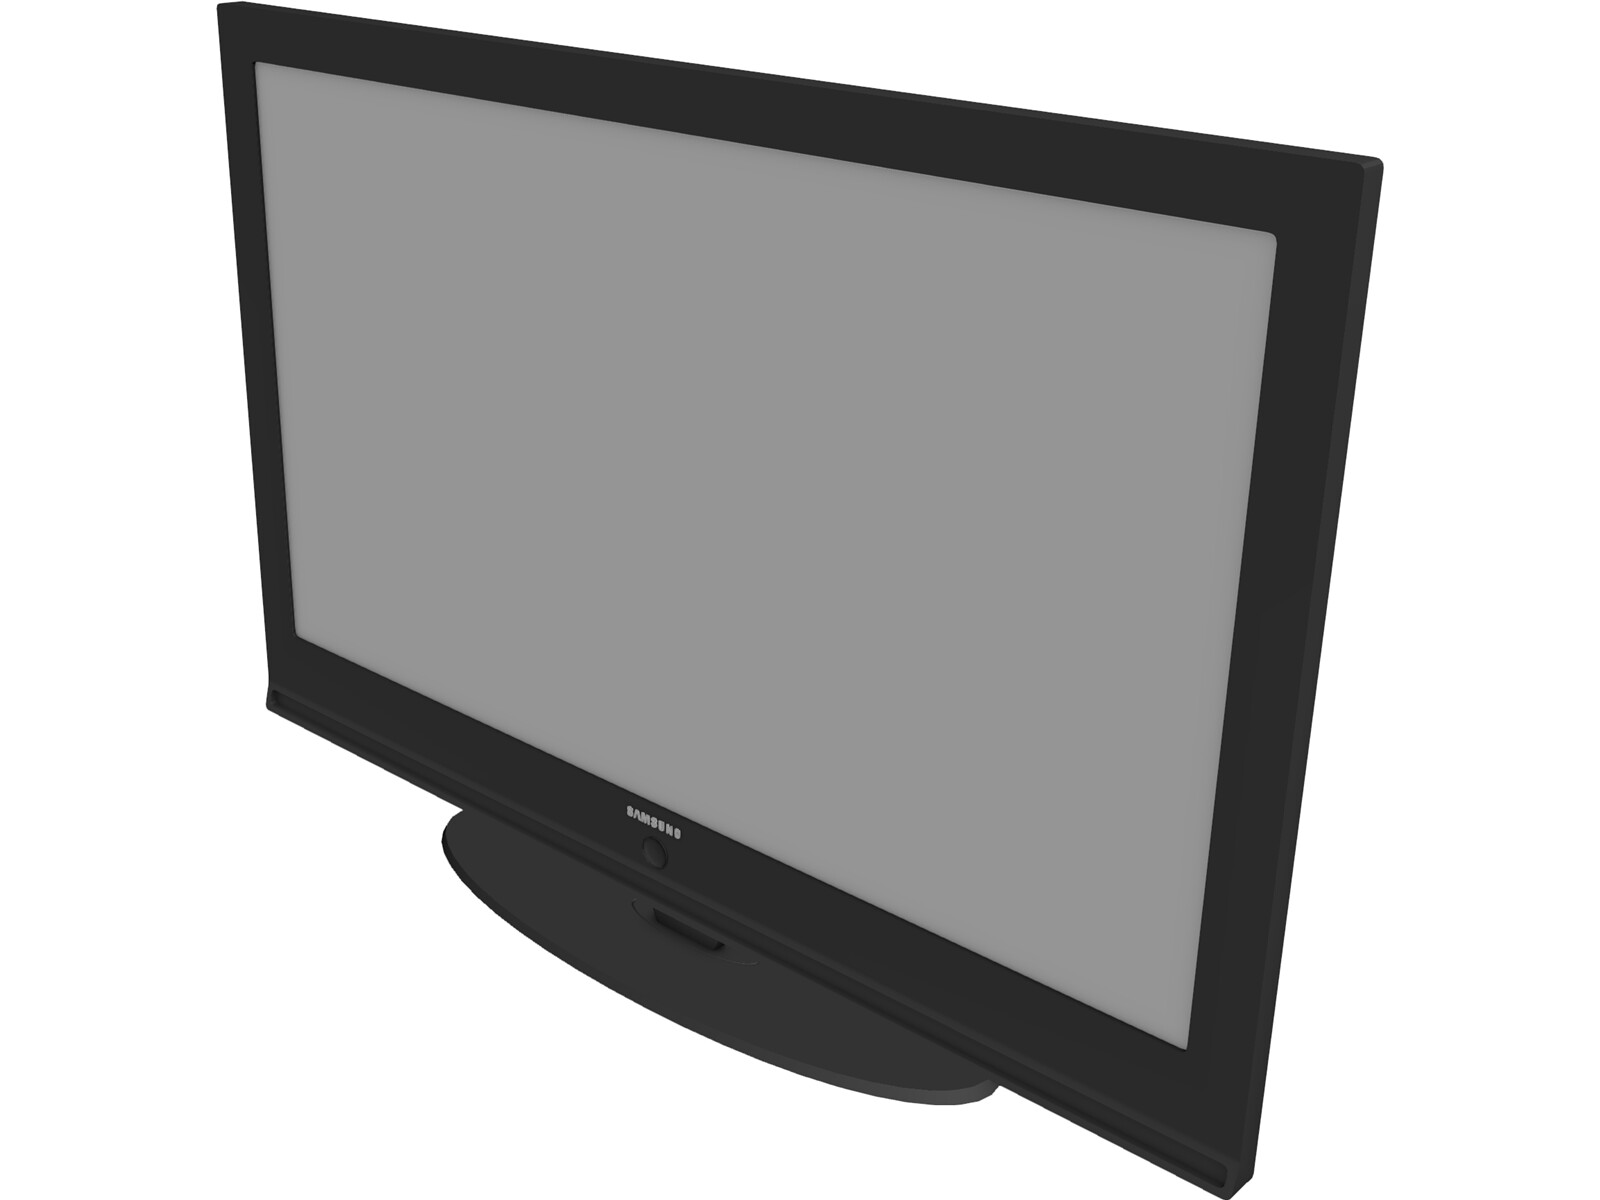 Samsung Plasma TV PS-42Q91H